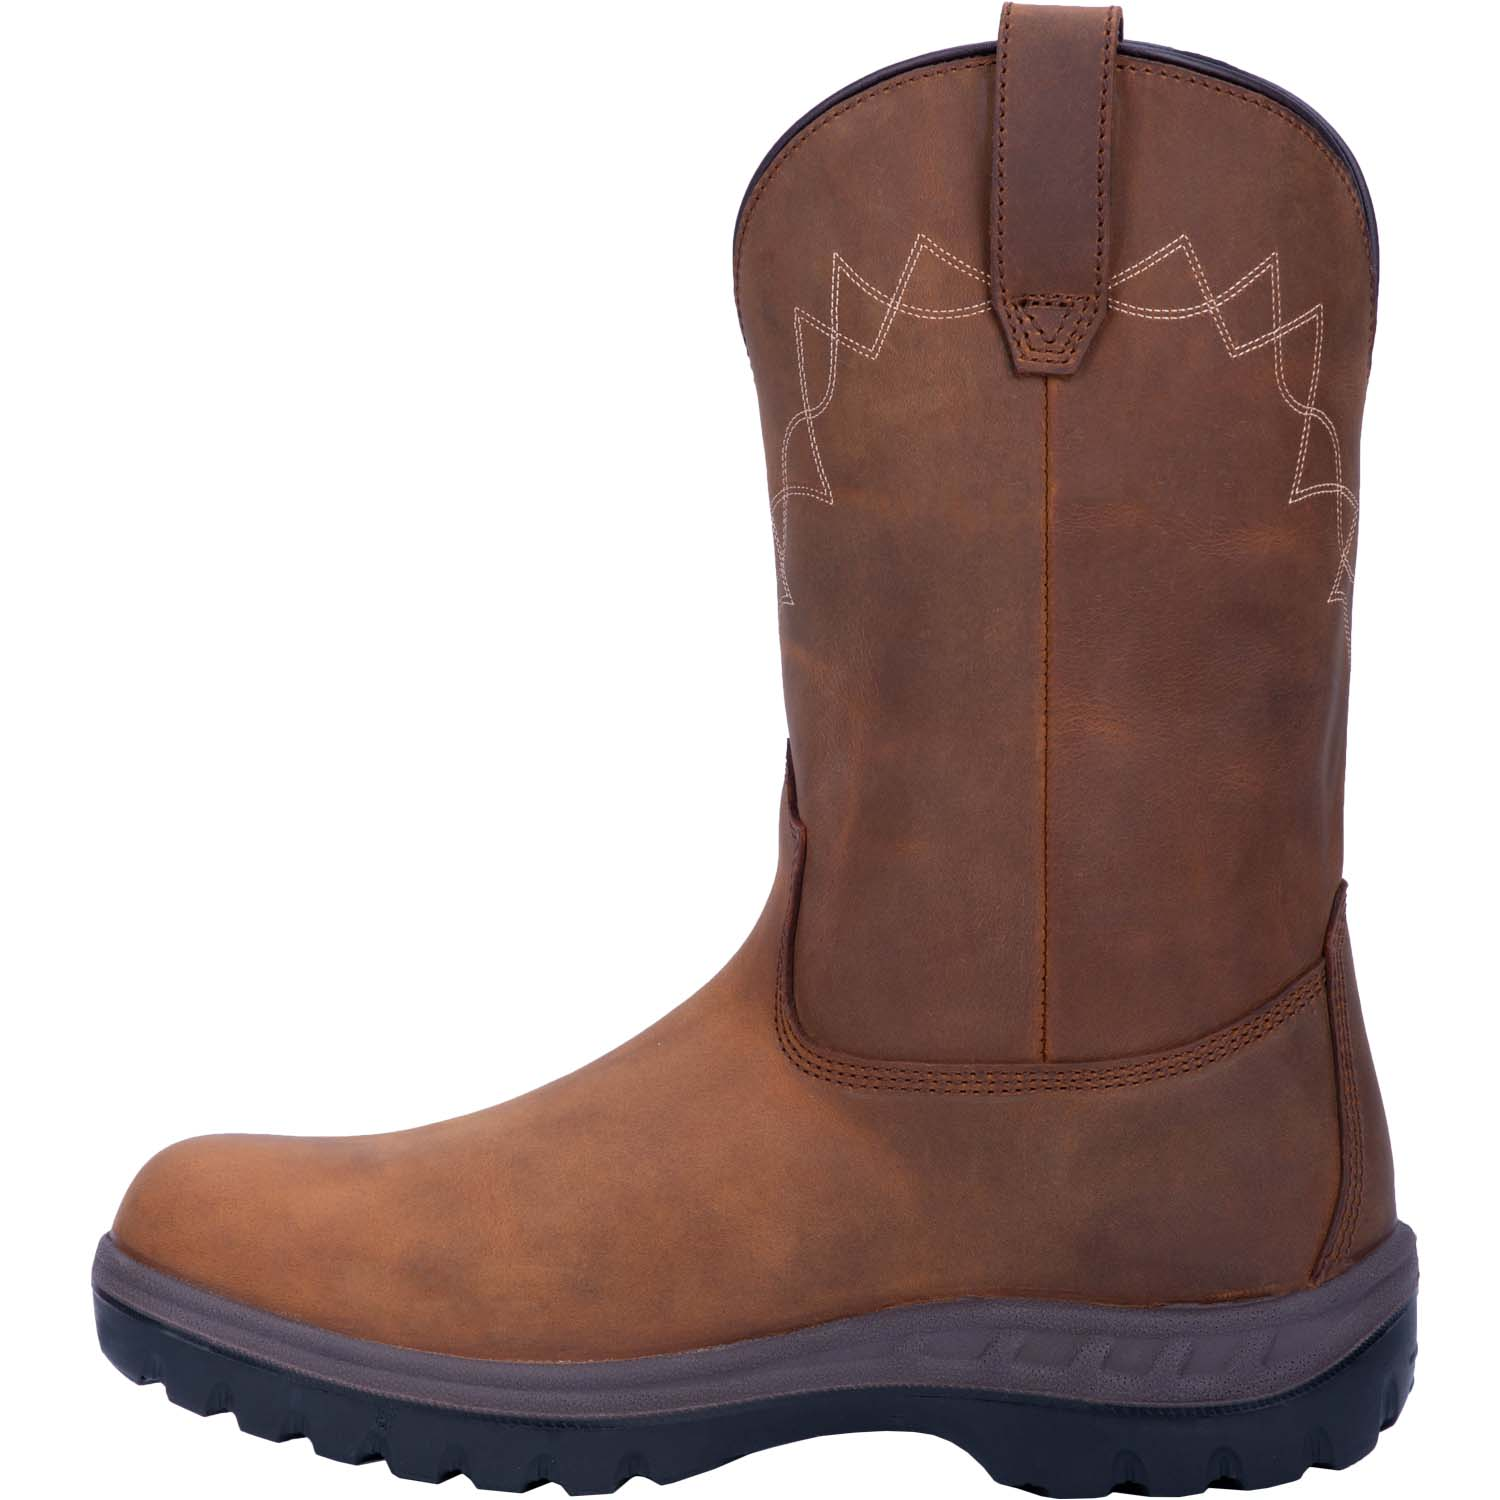 CUMMINS-WATERPROOF STEEL TOE 13239212703786